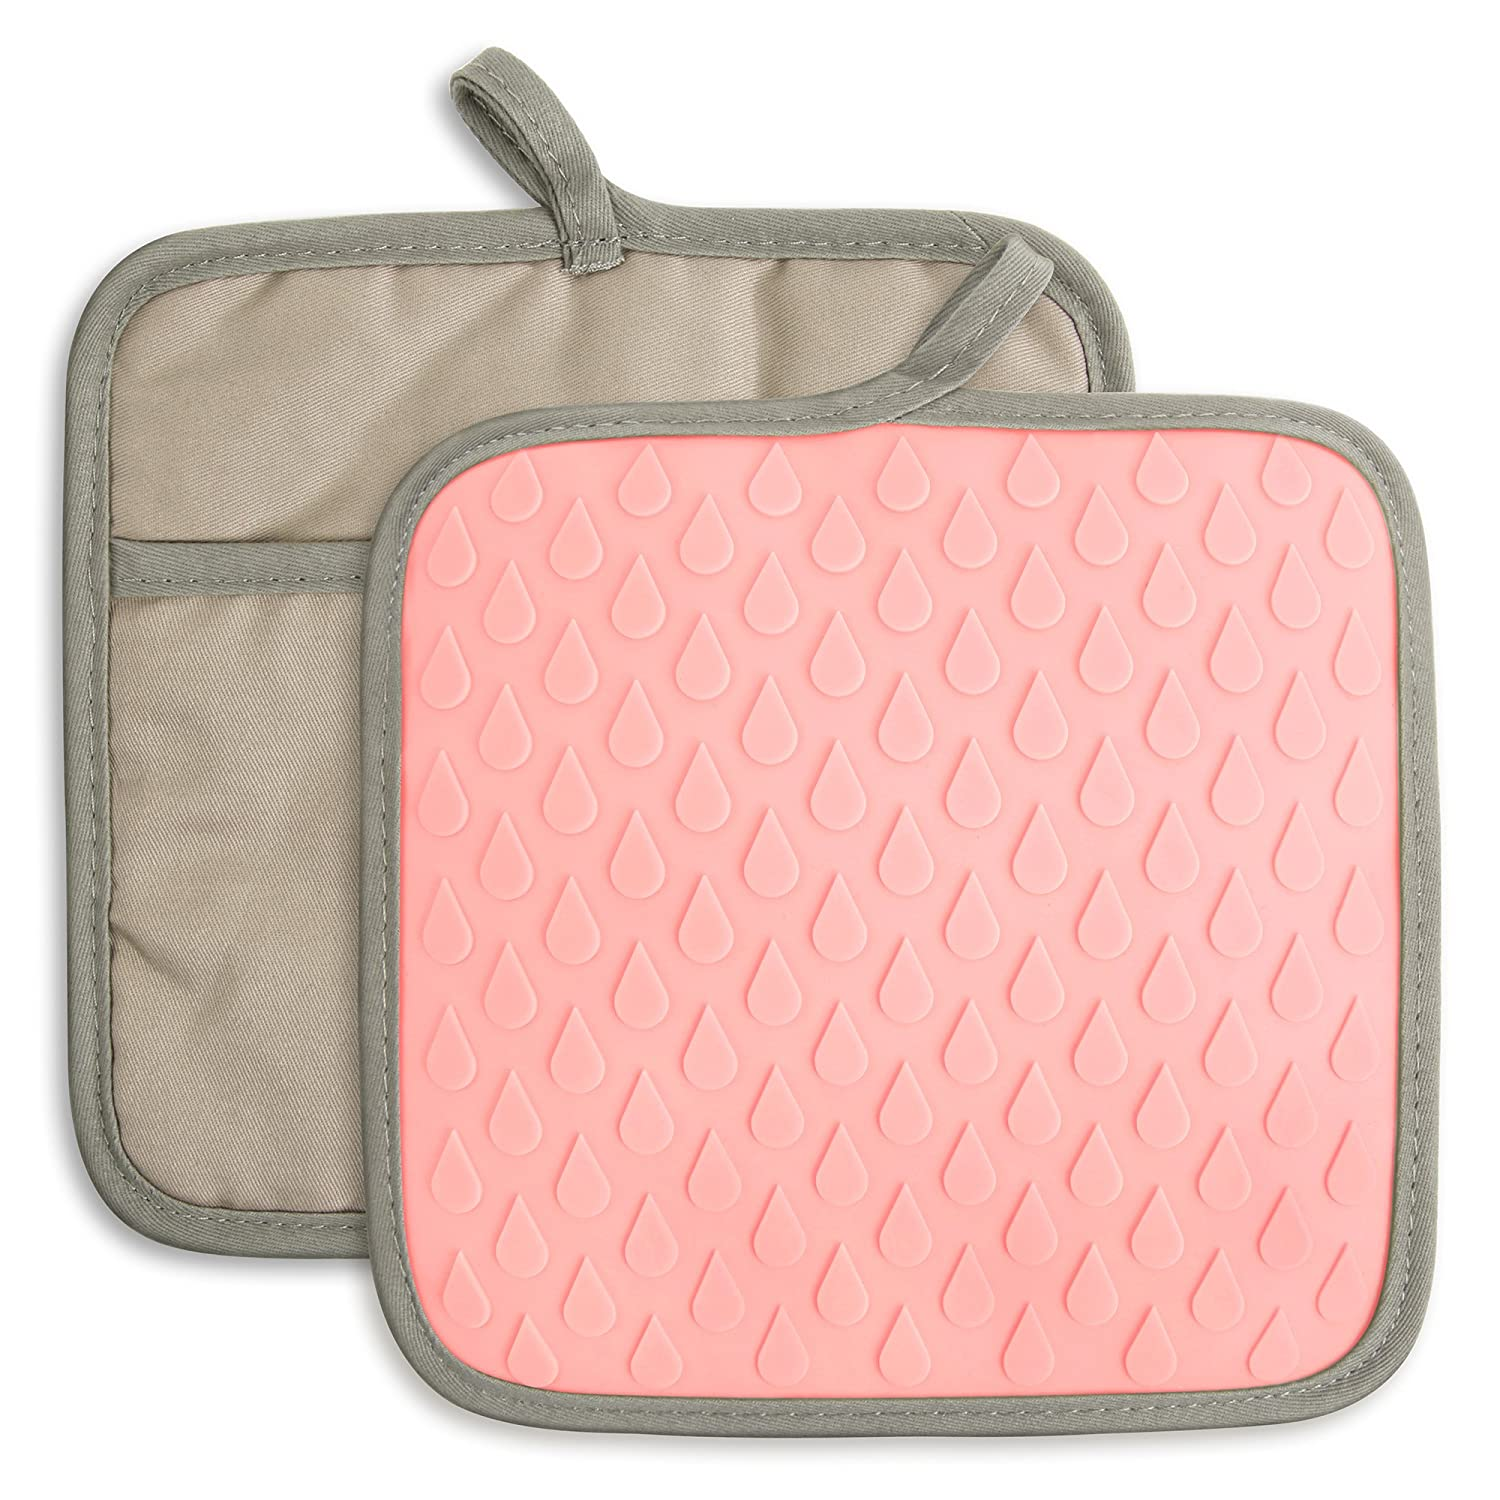 ELFRhino Silicone Heat Resistant Pot Holder Hot Mats Pads Oven Gloves Mitts Waterproof Non-slip Kitchen Mats for Cooking Potholders Grilling Baking Set of 2 Pink